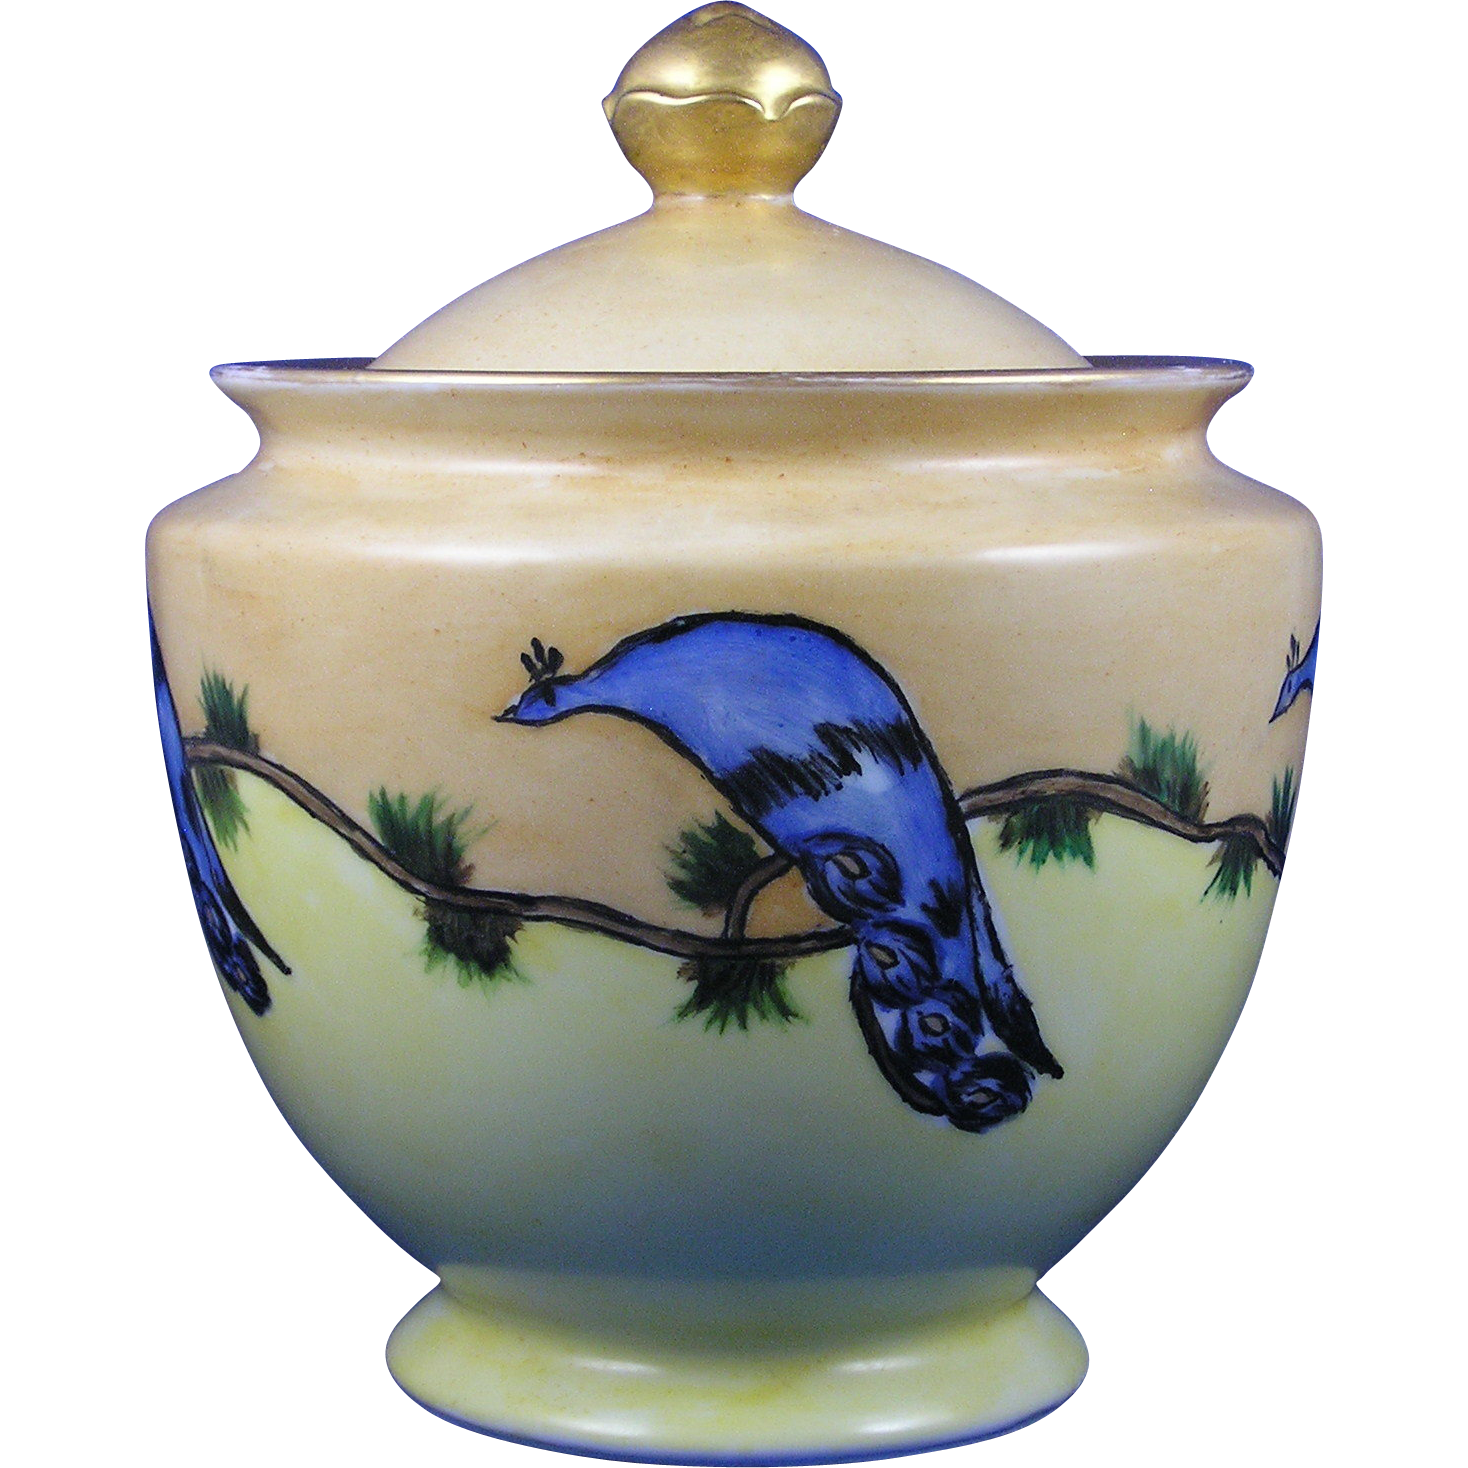 Porcelain Blank Arts & Crafts Peacock Motif Biscuit Jar (c.1910-1930) - Keramic Studio Design